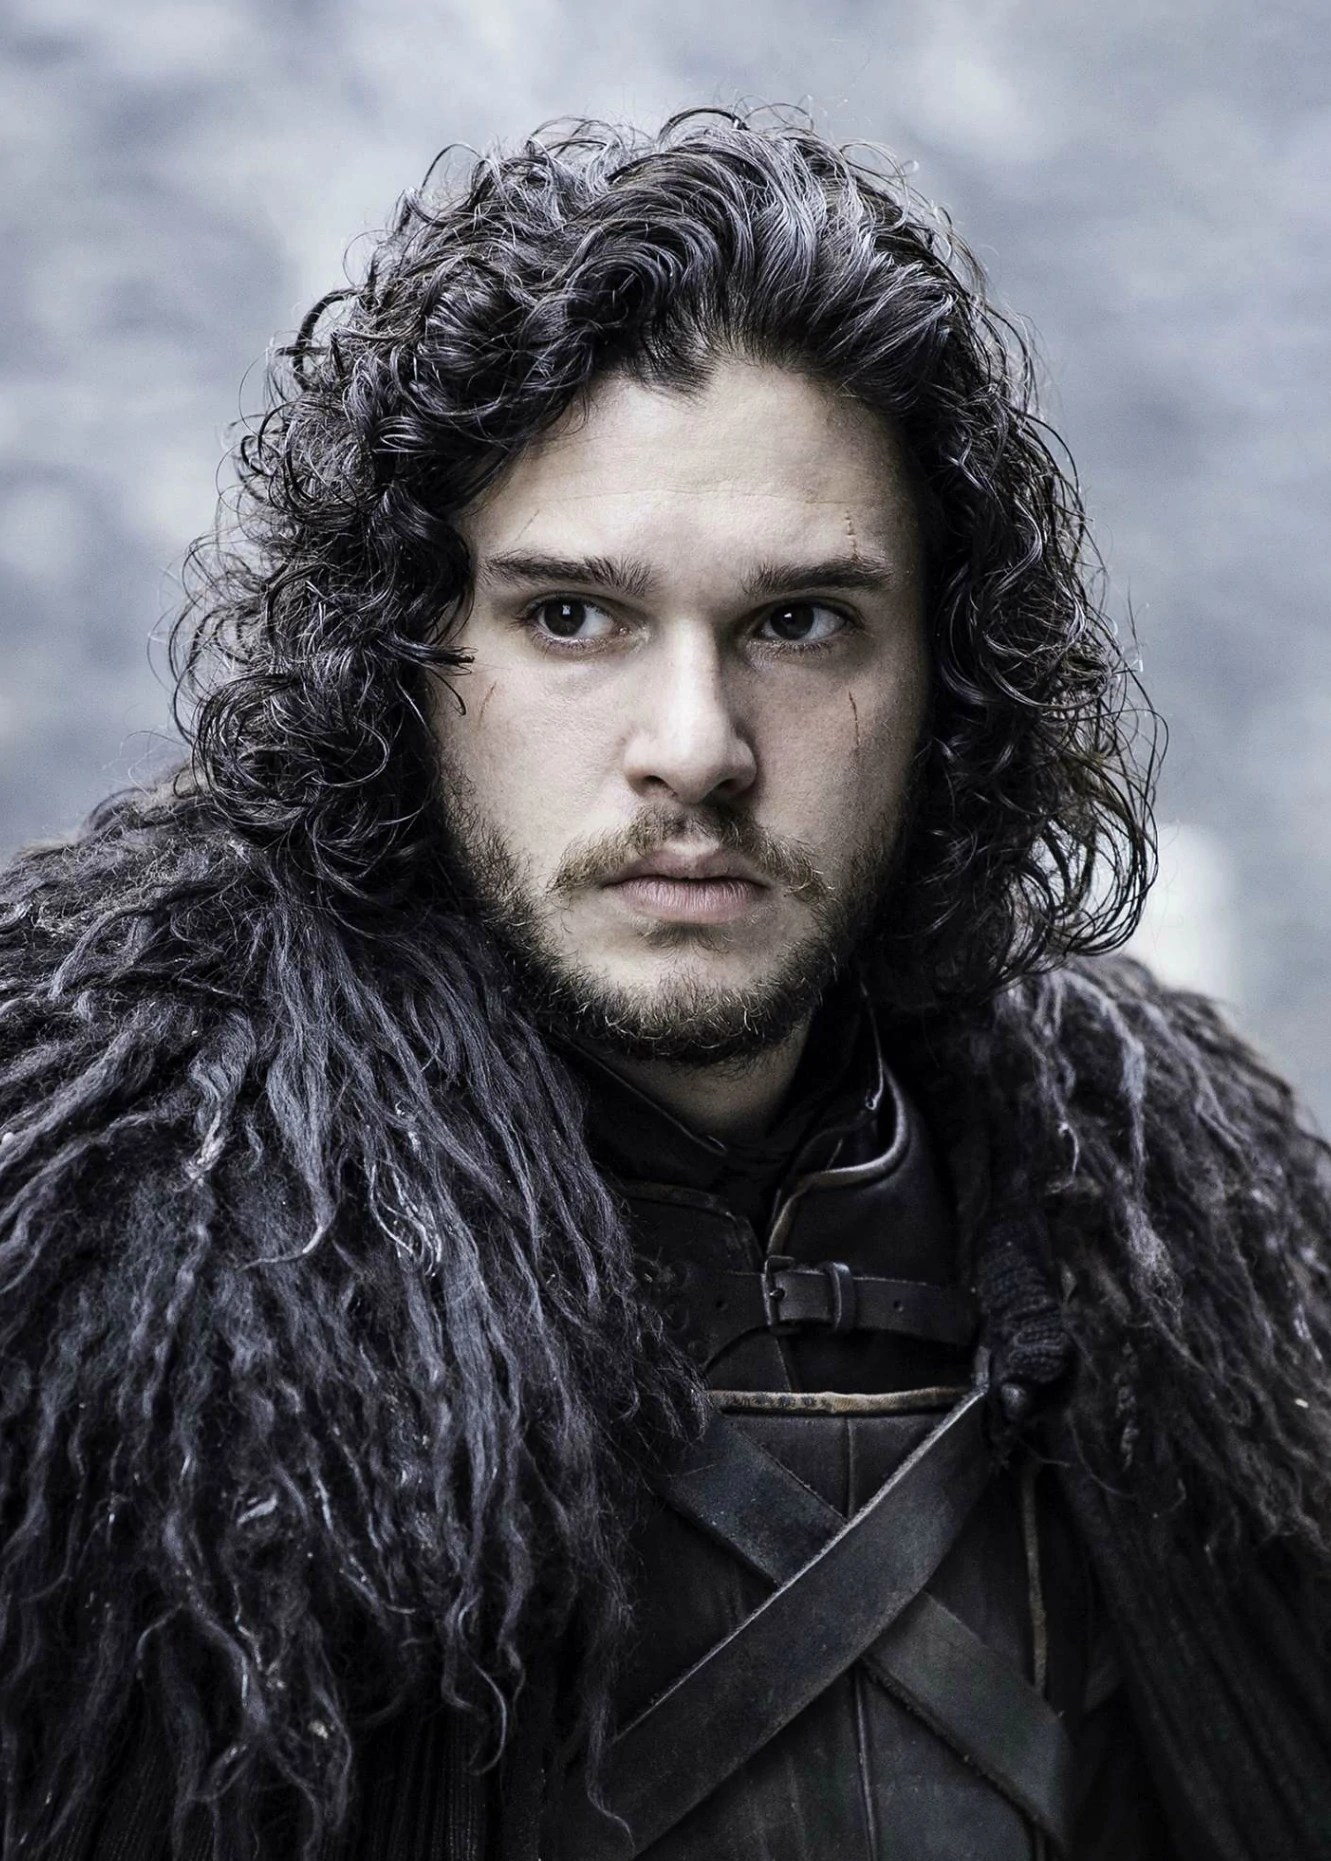 image jon snow s05e05 jpg game of thrones wiki fandom powered by wikia